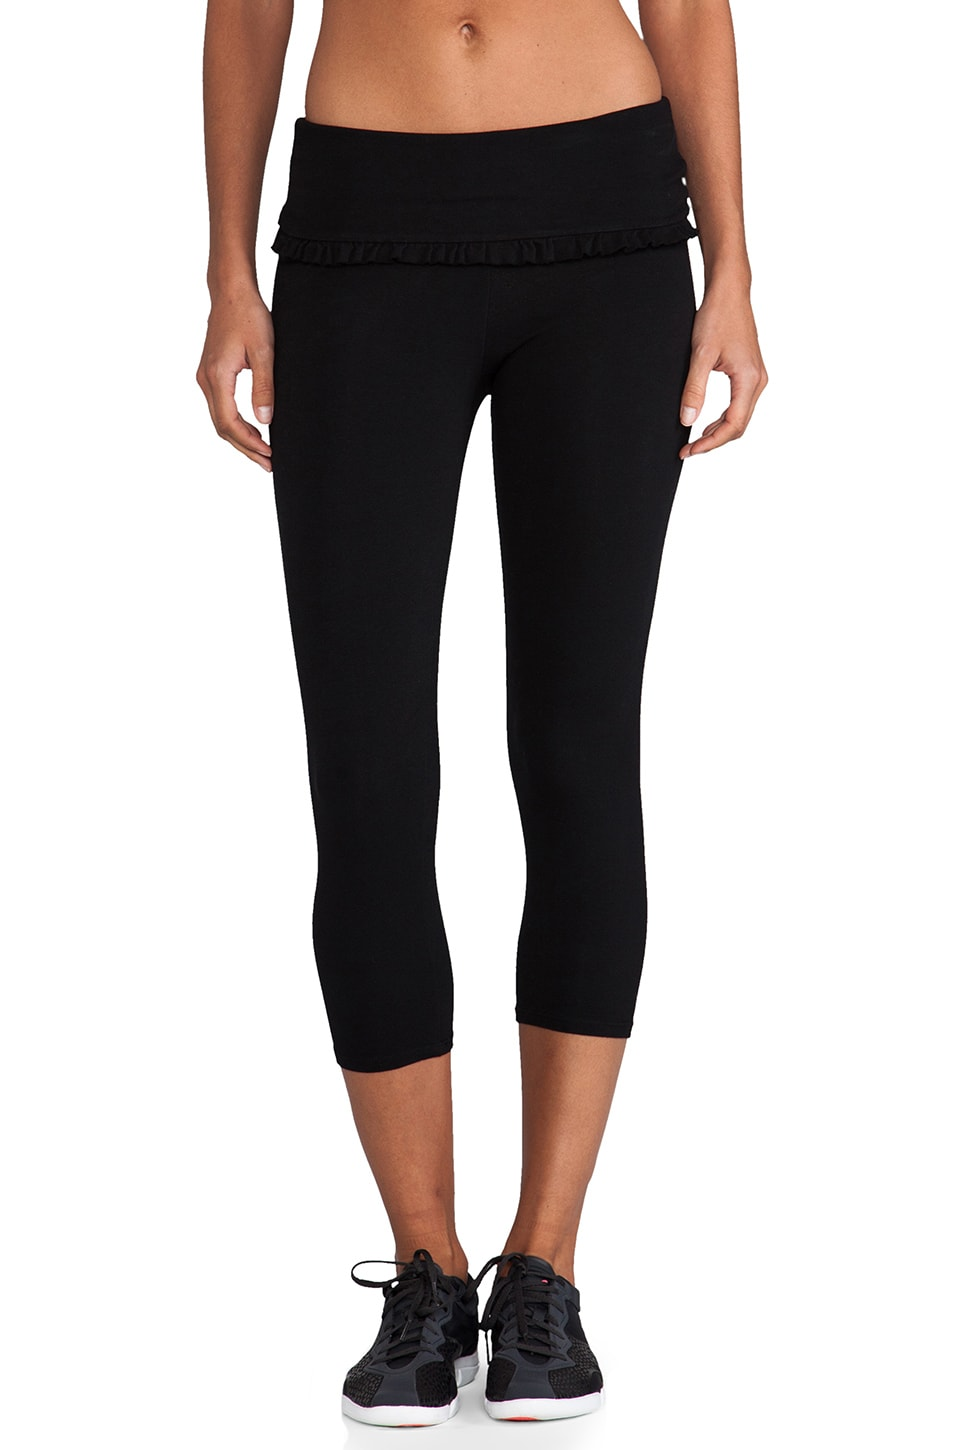 SOLOW Basics Ruffles Fold Over Crop Pant in Black